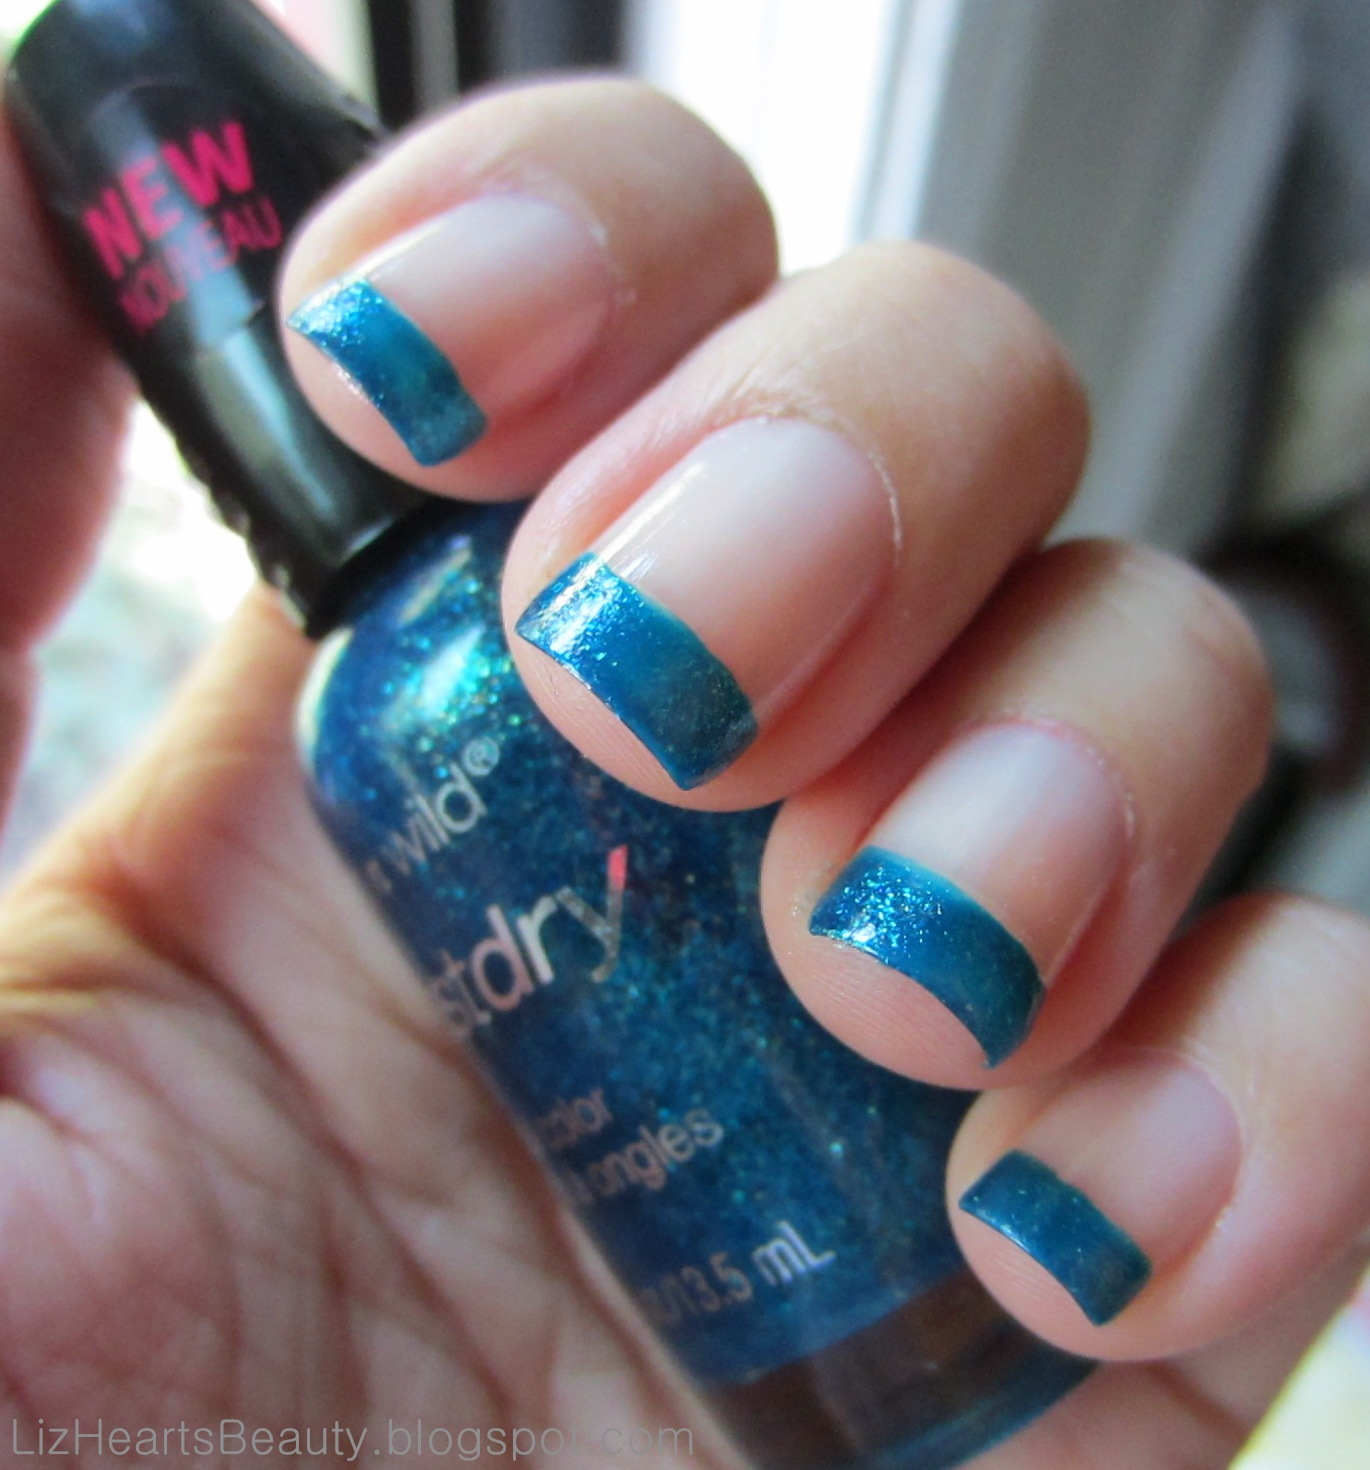 Liz Hearts Beauty!: Wet n Wild fastdry Nail Polish, French Tip Style